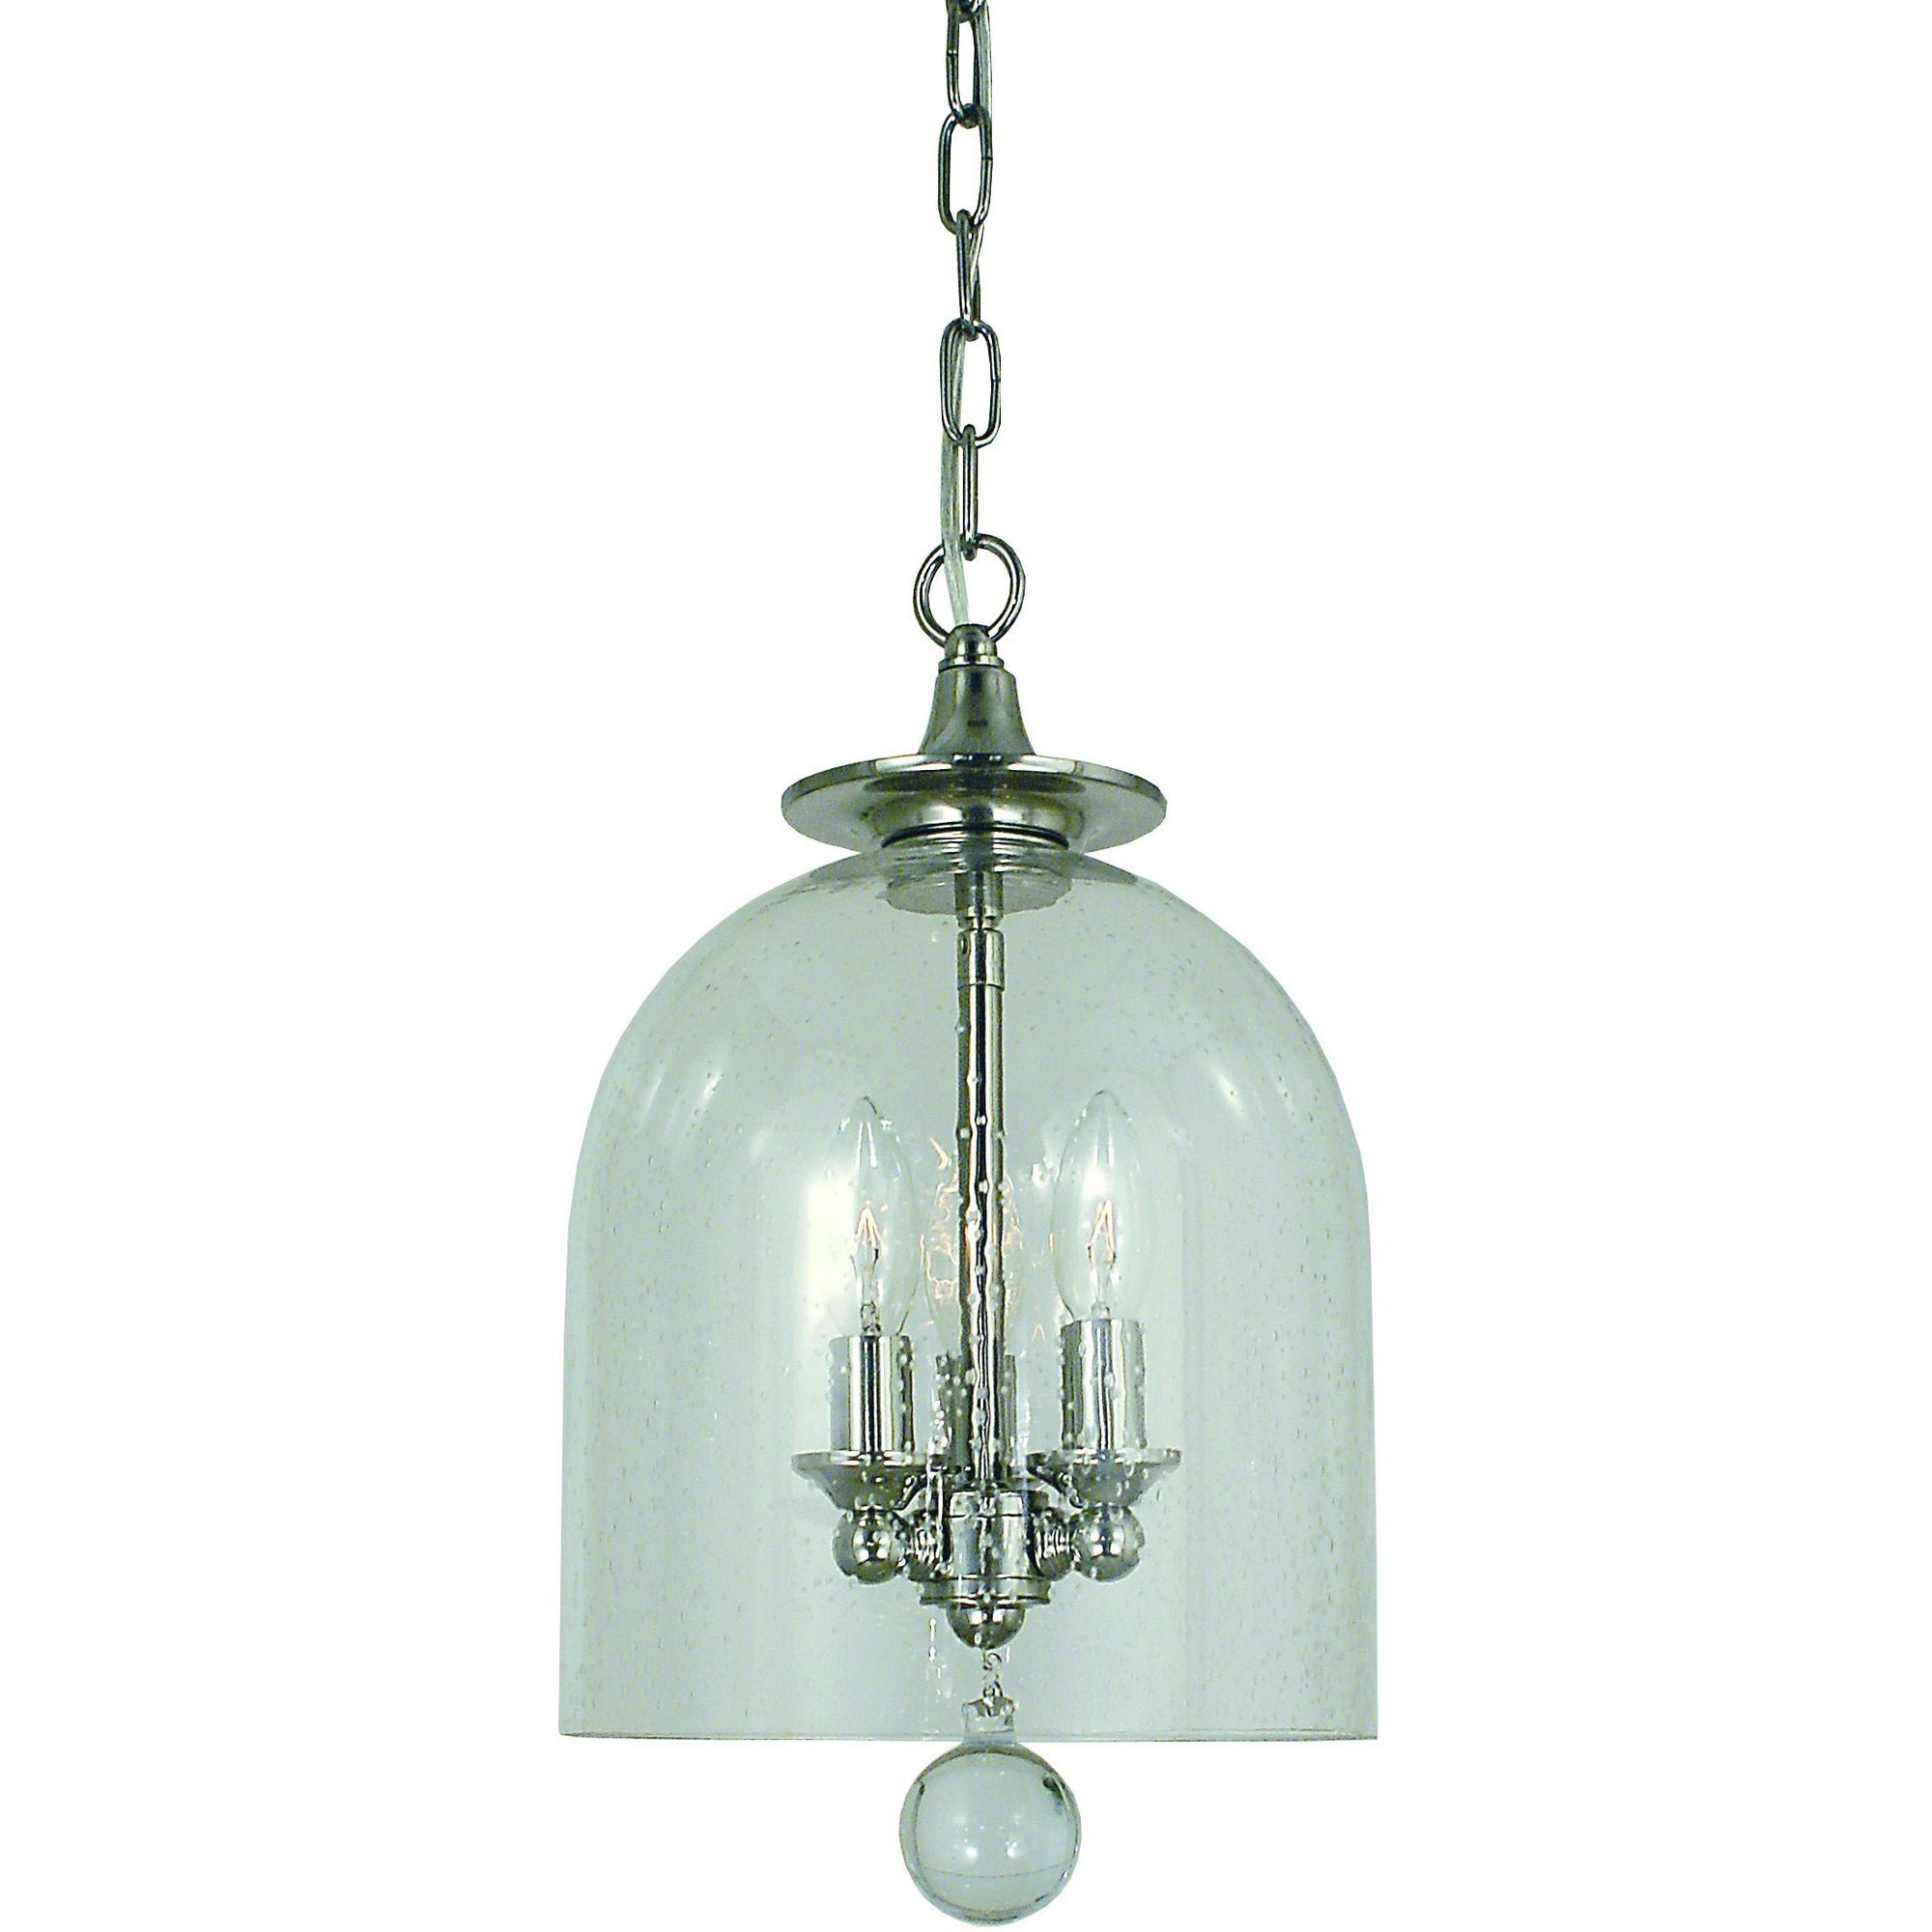 Framburg Mini Chandeliers Polished Nickel 3-Light Polished Nickel Hannover Pendant by Framburg 4353